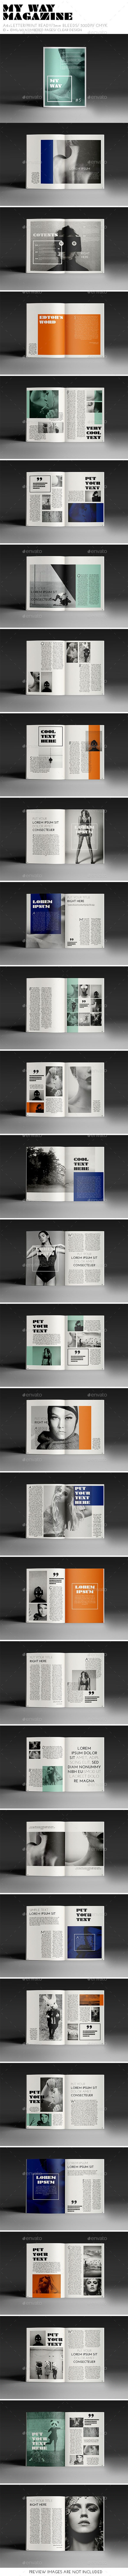 My Way Magazine #interesting #layout #letter • Available here → http://graphicriver.net/item/my-way-magazine/11166748?s_rank=137&ref=pxcr